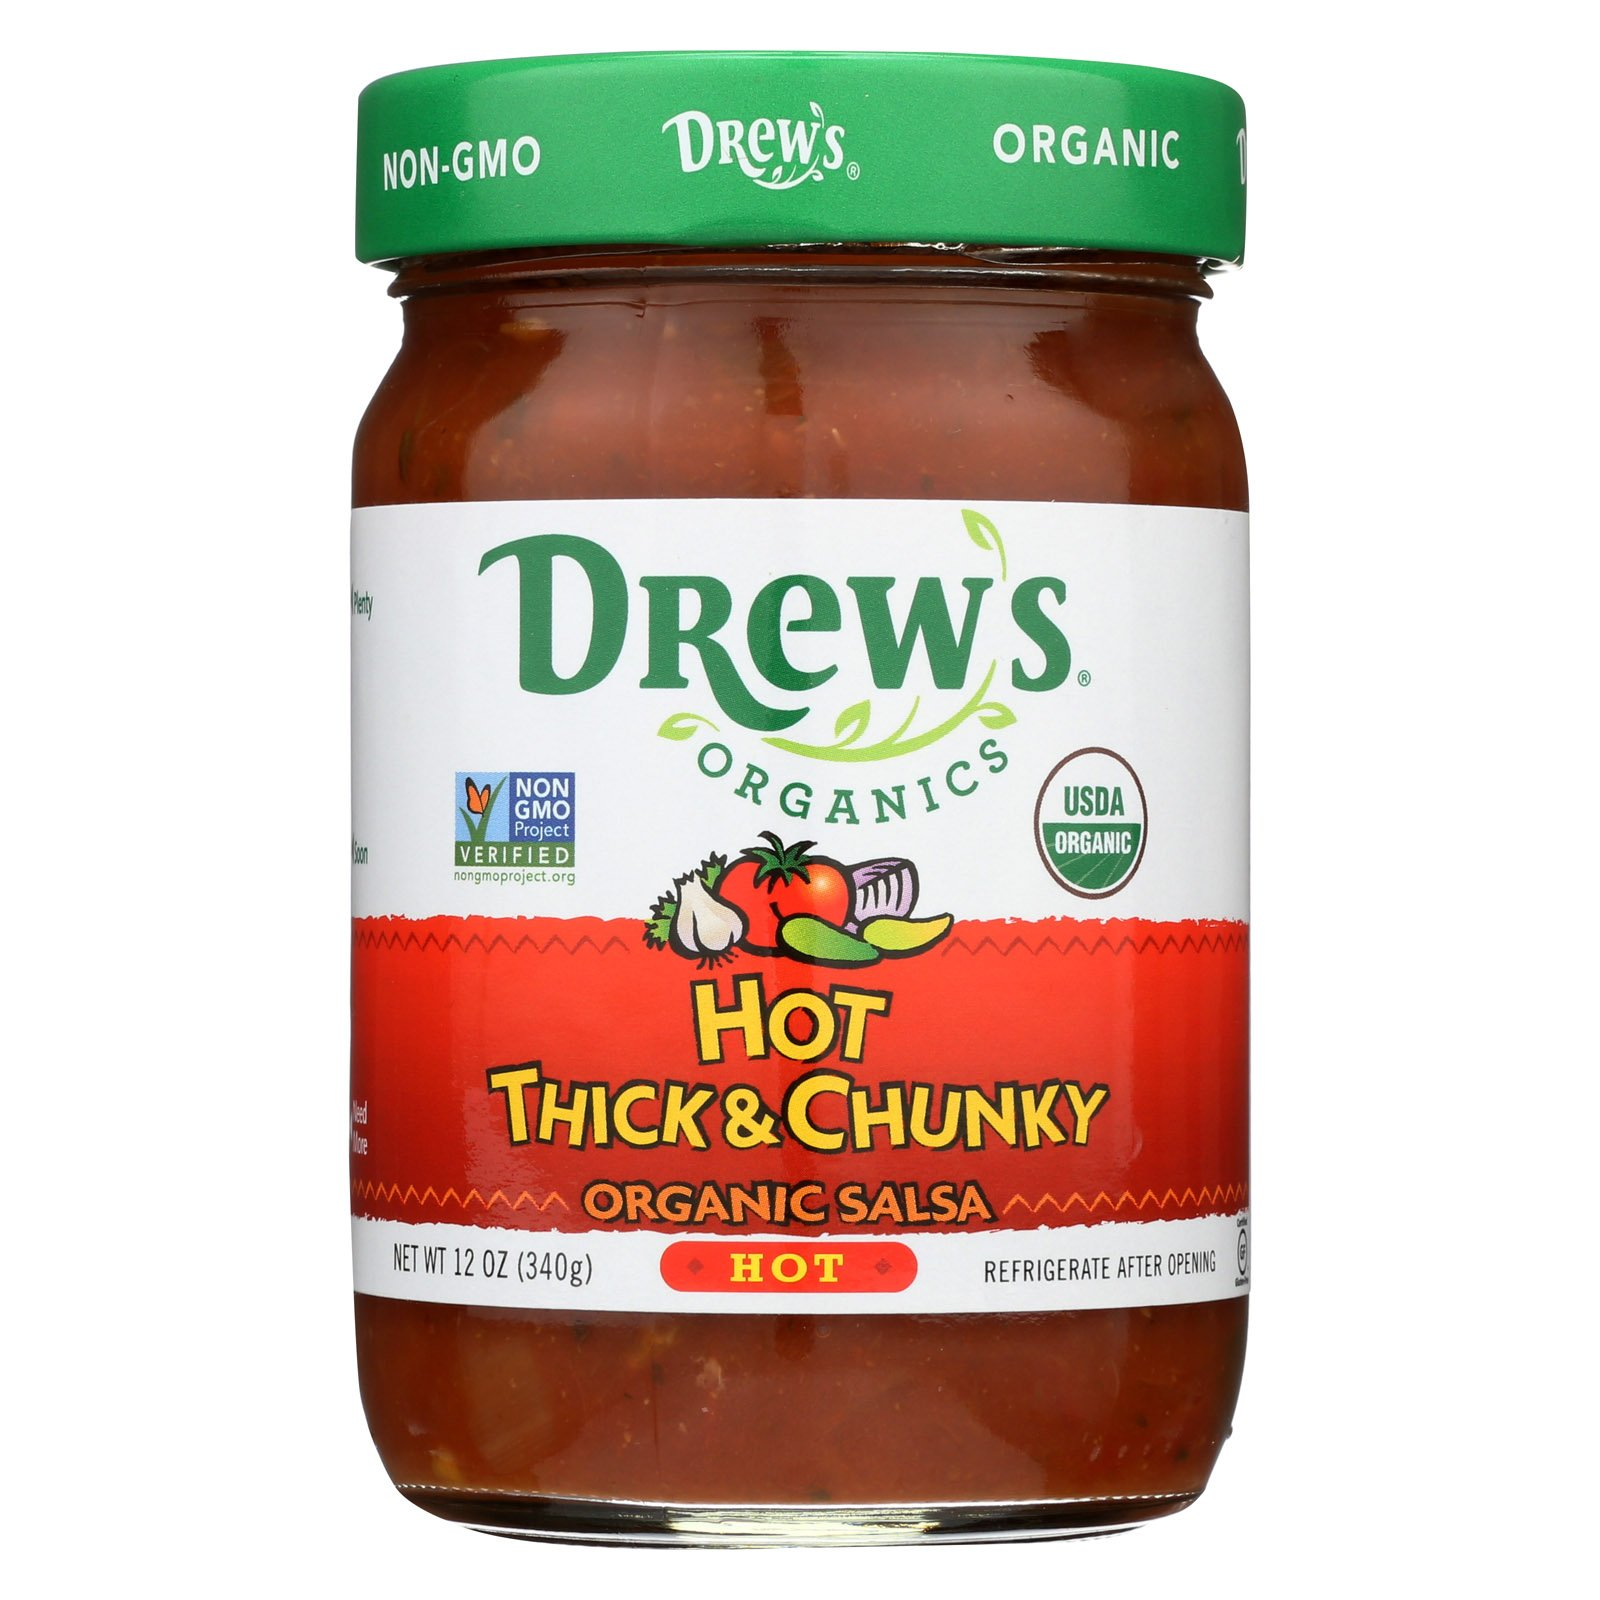 Drew's Organics Hot Thick and Chunky Salsa - 12 Oz. - Case of 6 by Drew's Organics